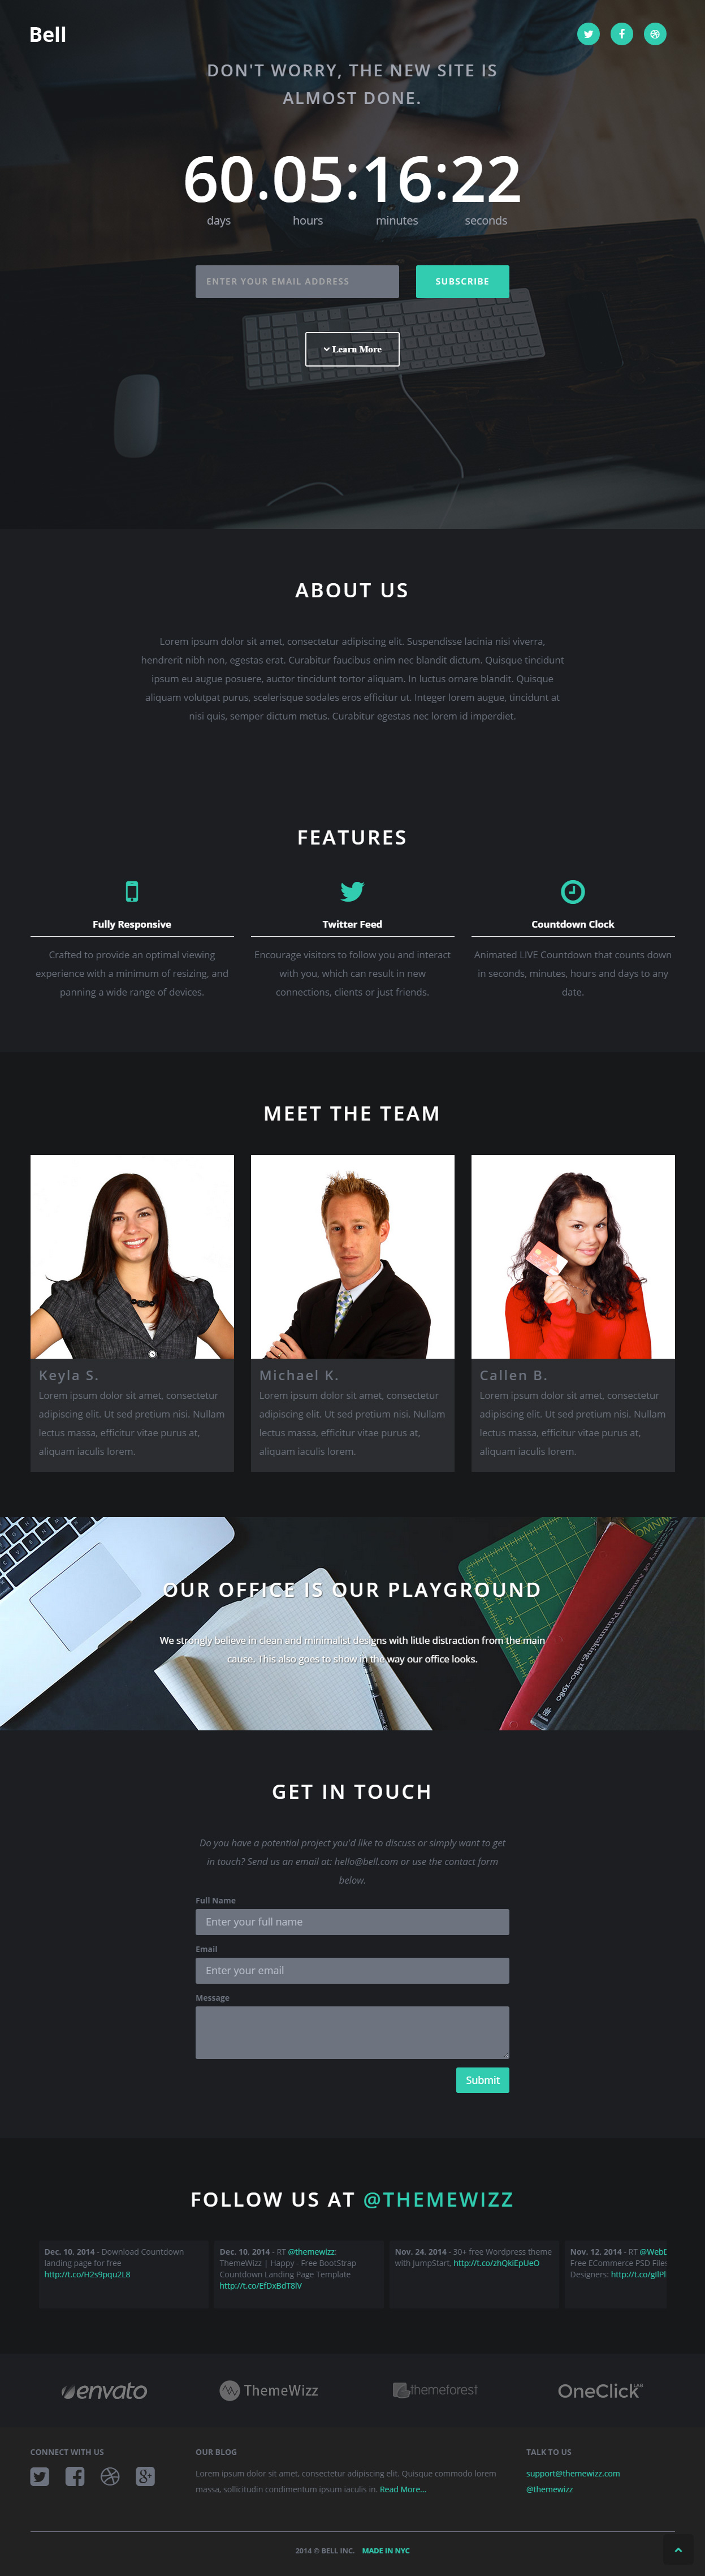 Bell - Premium Responsive Landing Page HTML5 Template